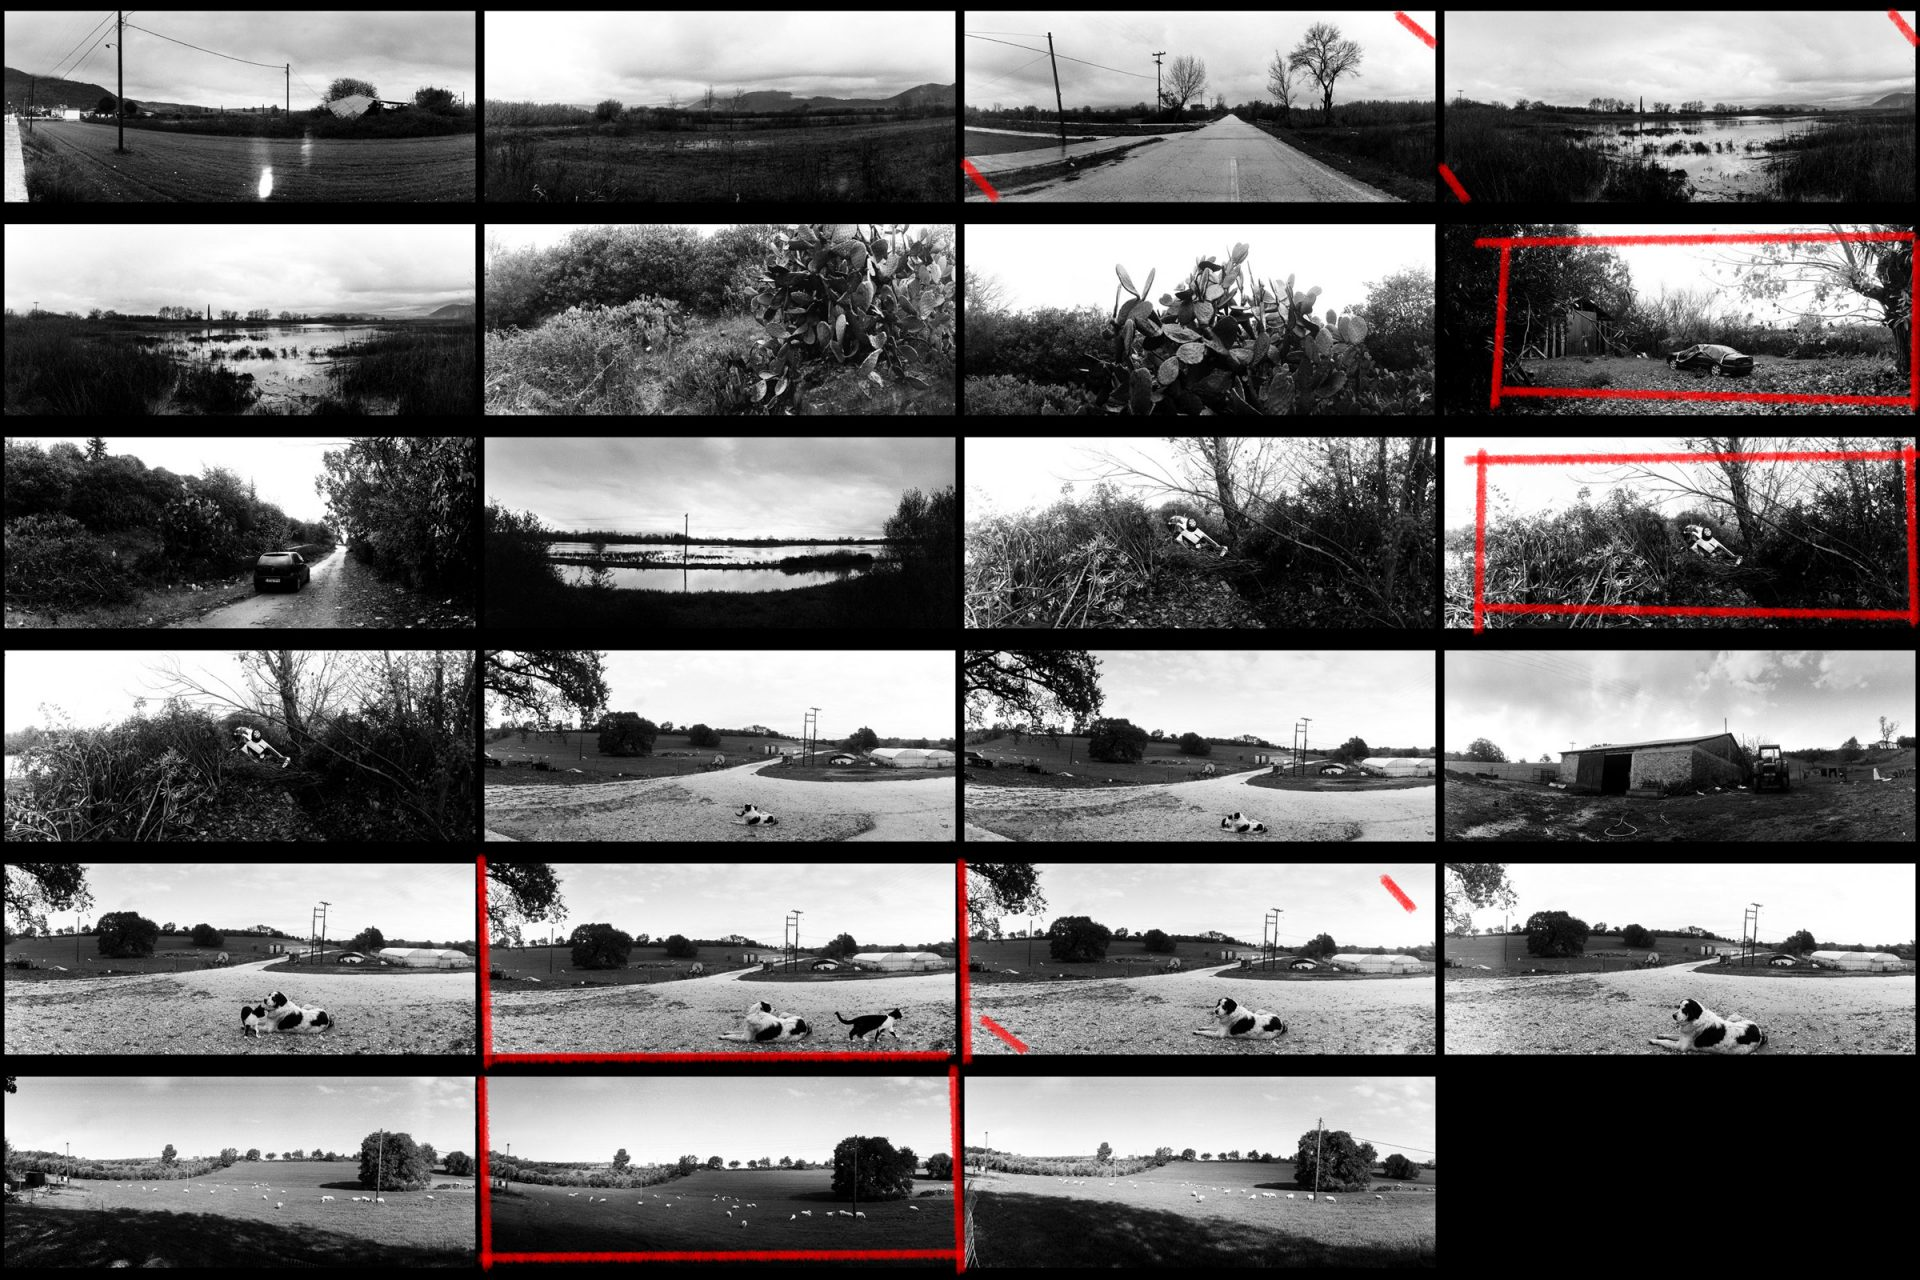 Ilford Pan 400 contact sheet, shot with Horizon 202 panoramic camera.